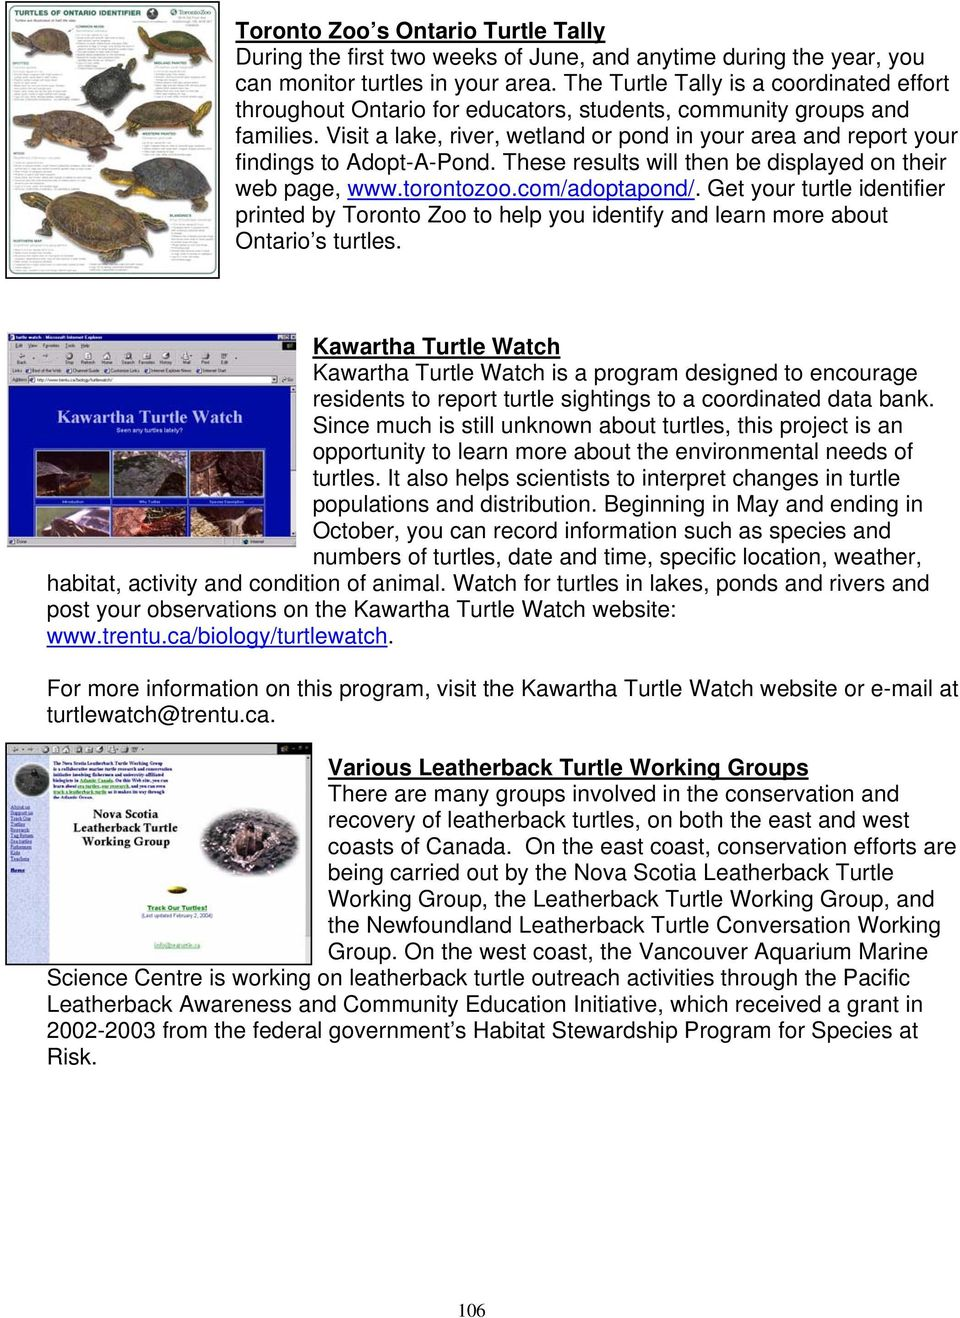 Visit a lake, river, wetland or pond in your area and report your findings to Adopt-A-Pond. These results will then be displayed on their web page, www.torontozoo.com/adoptapond/.